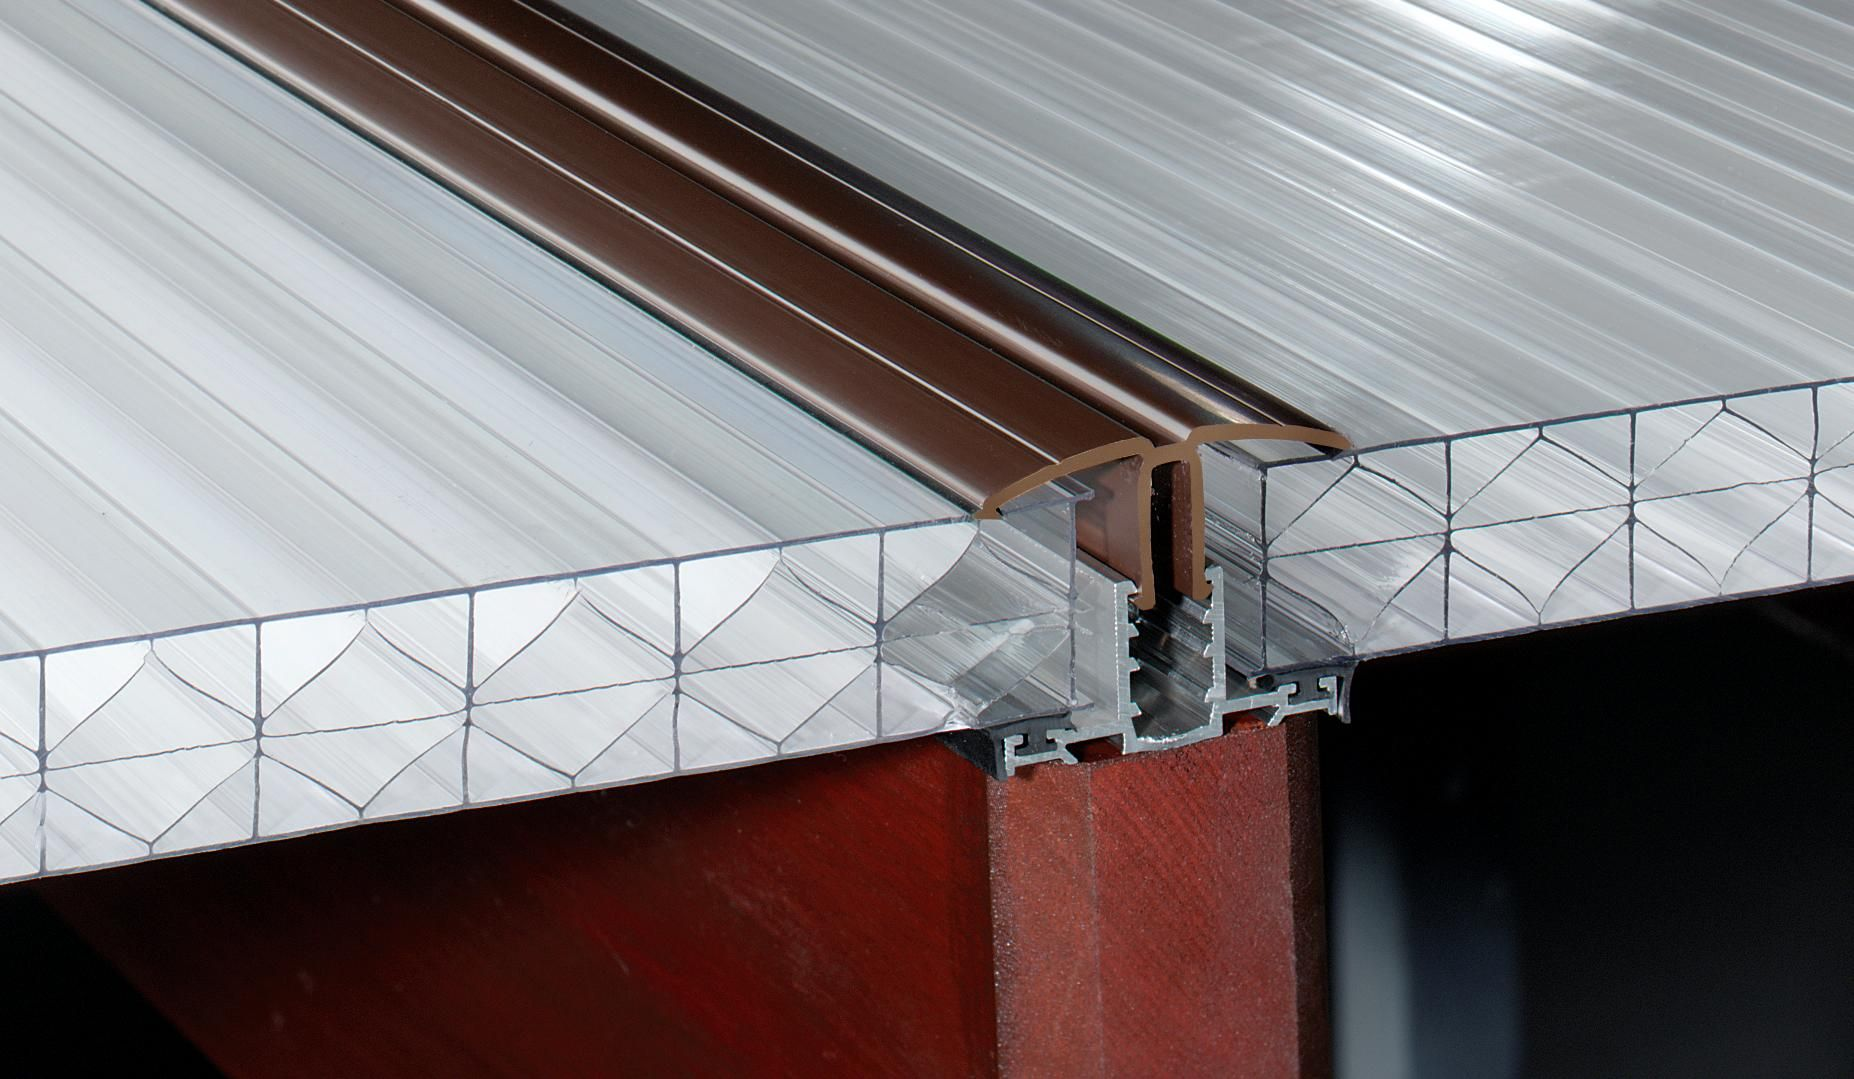 Polycarbonate Roof Bars Roof Sheet Bars Polycarb Rafters Roofing Roof Design Roof Architecture